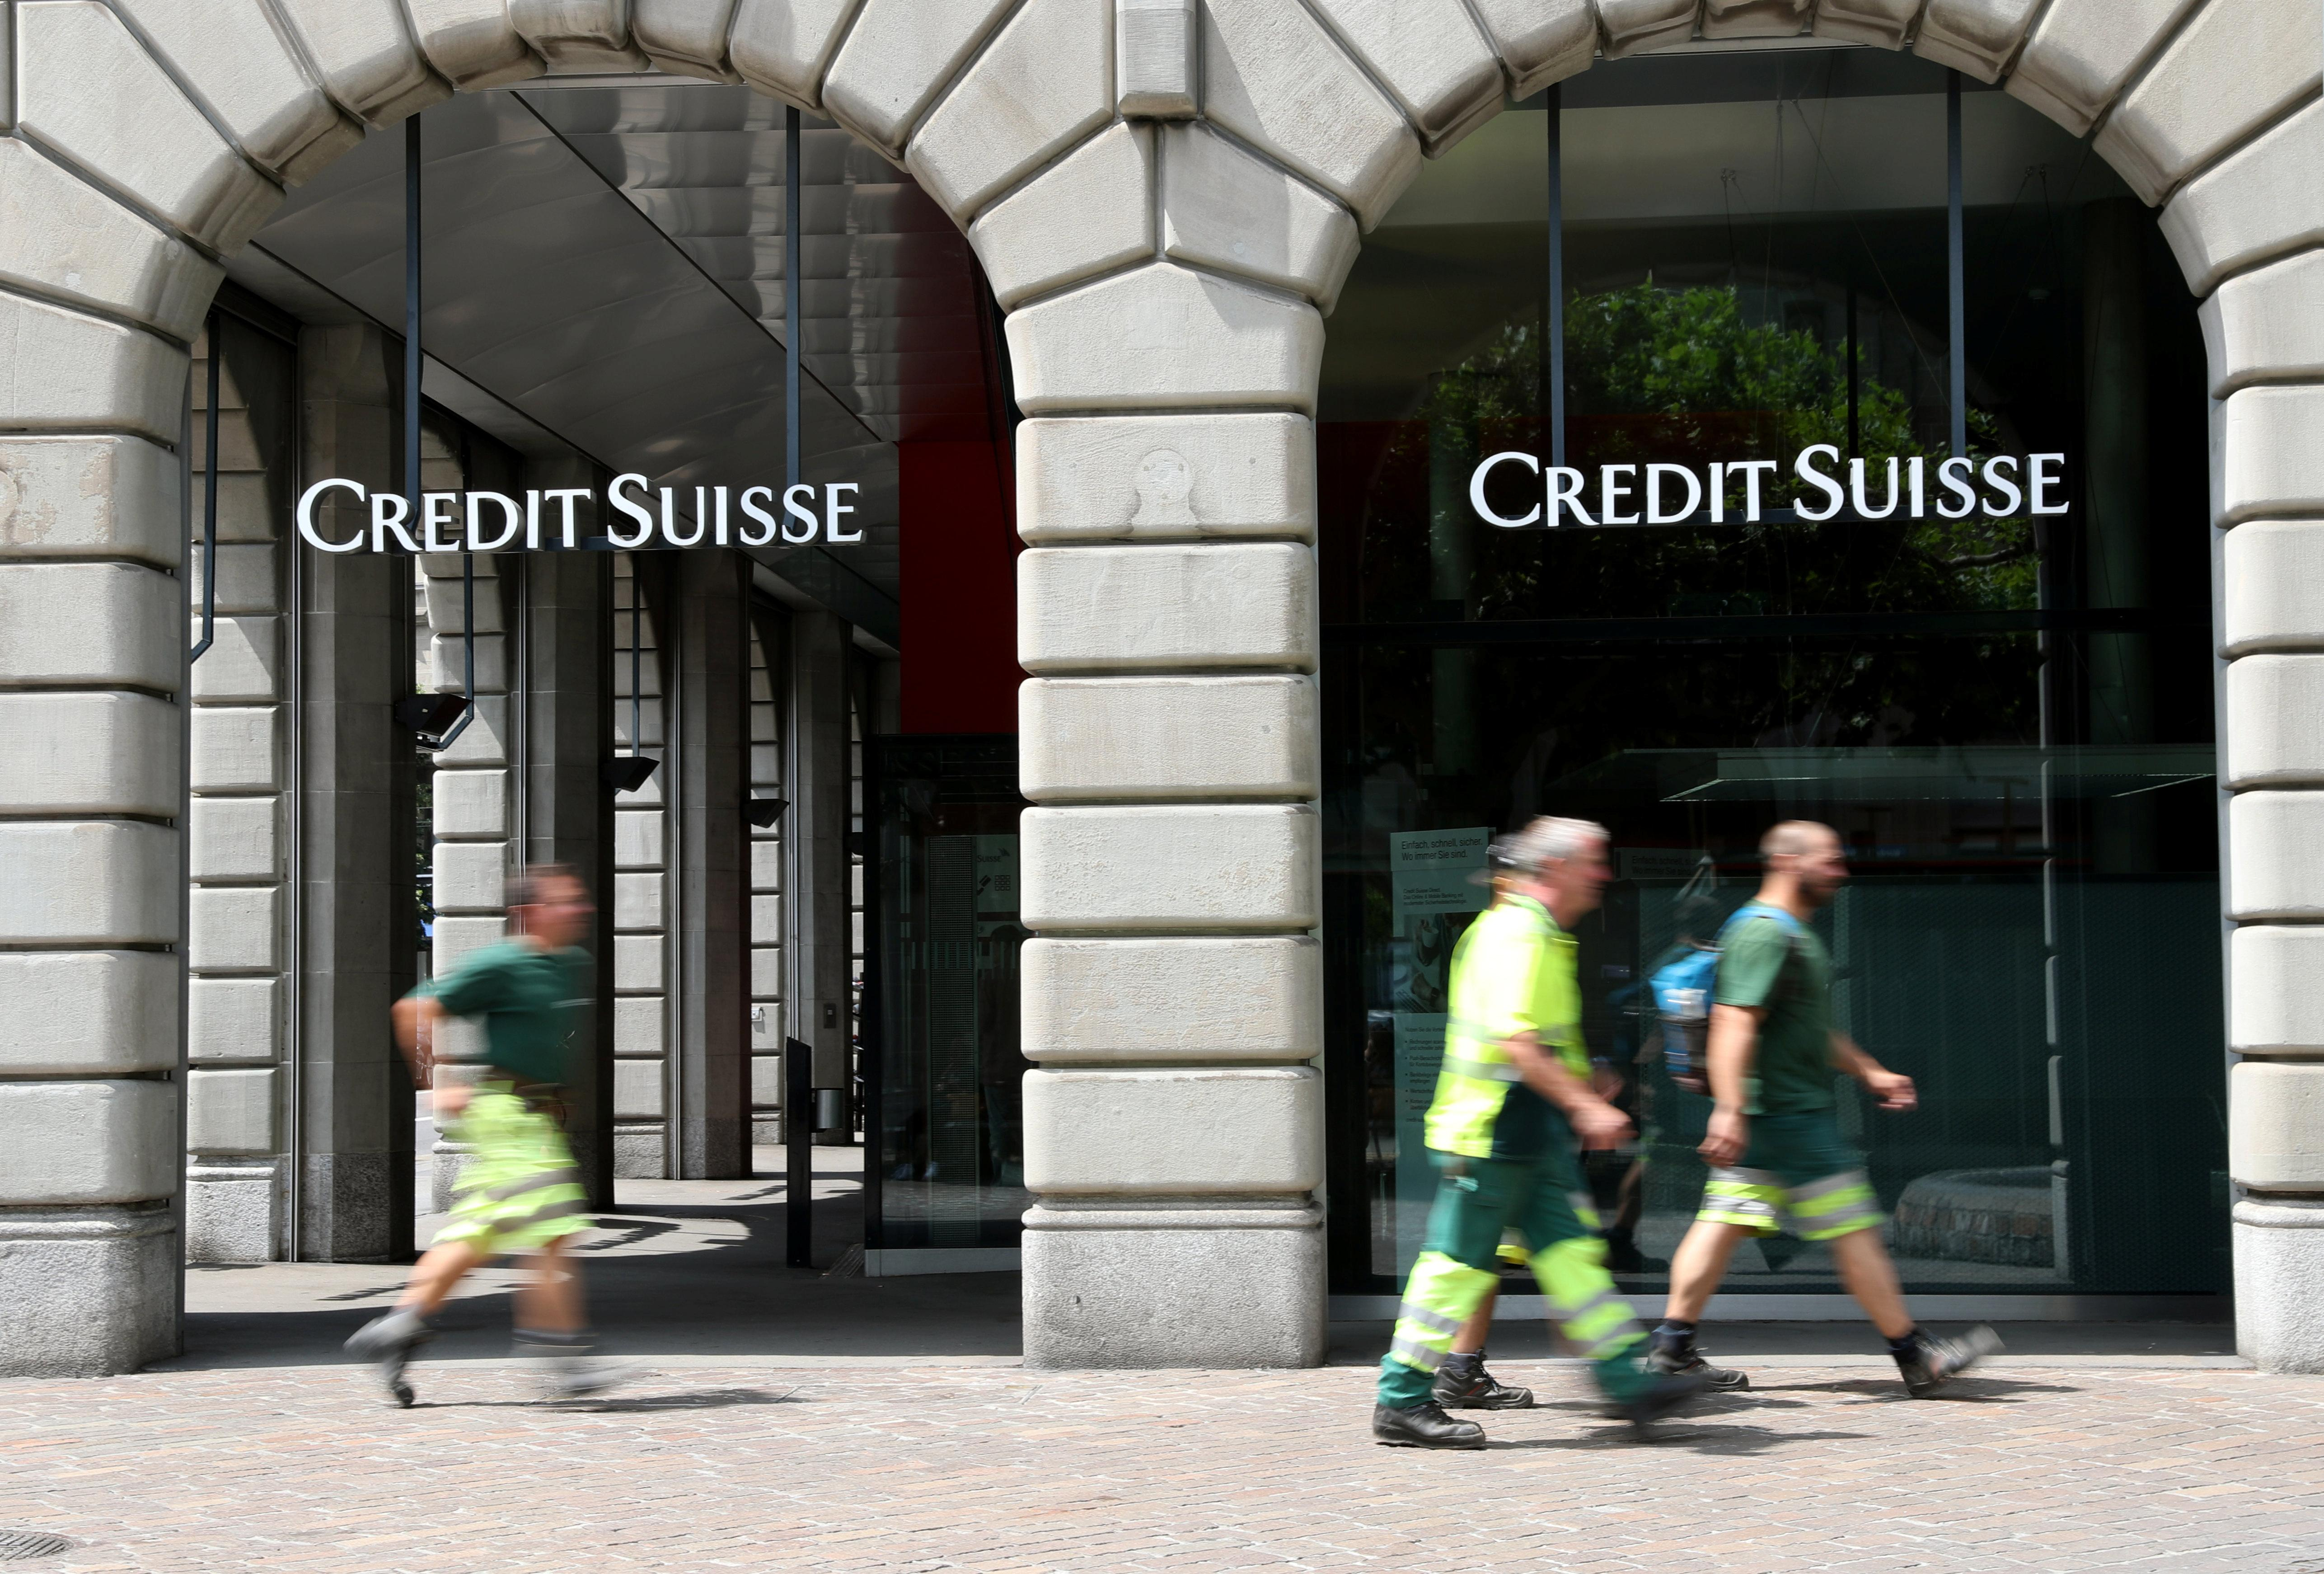 Out-of-whack Credit Suisse security puzzles volatility traders